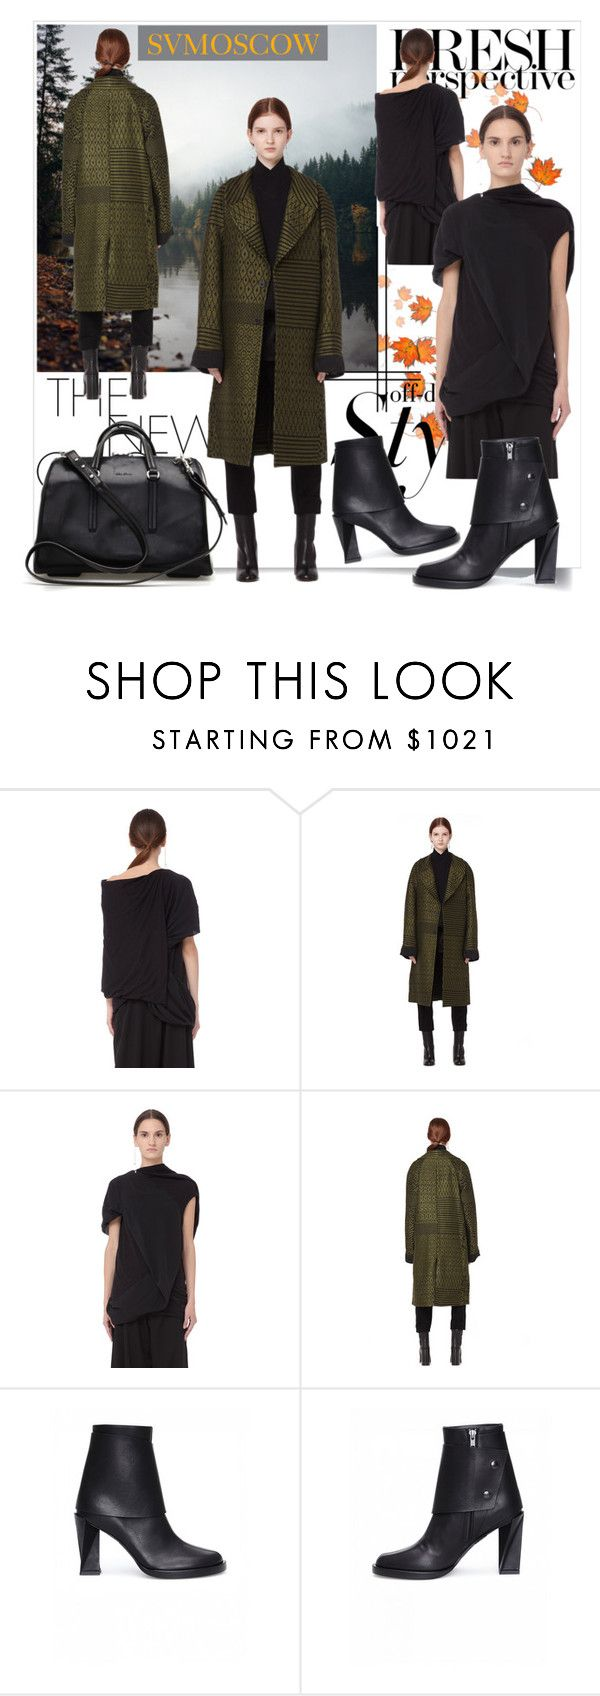 """SVMOSCOW 5"" by fashionb-784 ❤ liked on Polyvore featuring Rick Owens Lilies, Haider Ackermann, Ann Demeulemeester and svmoscow"